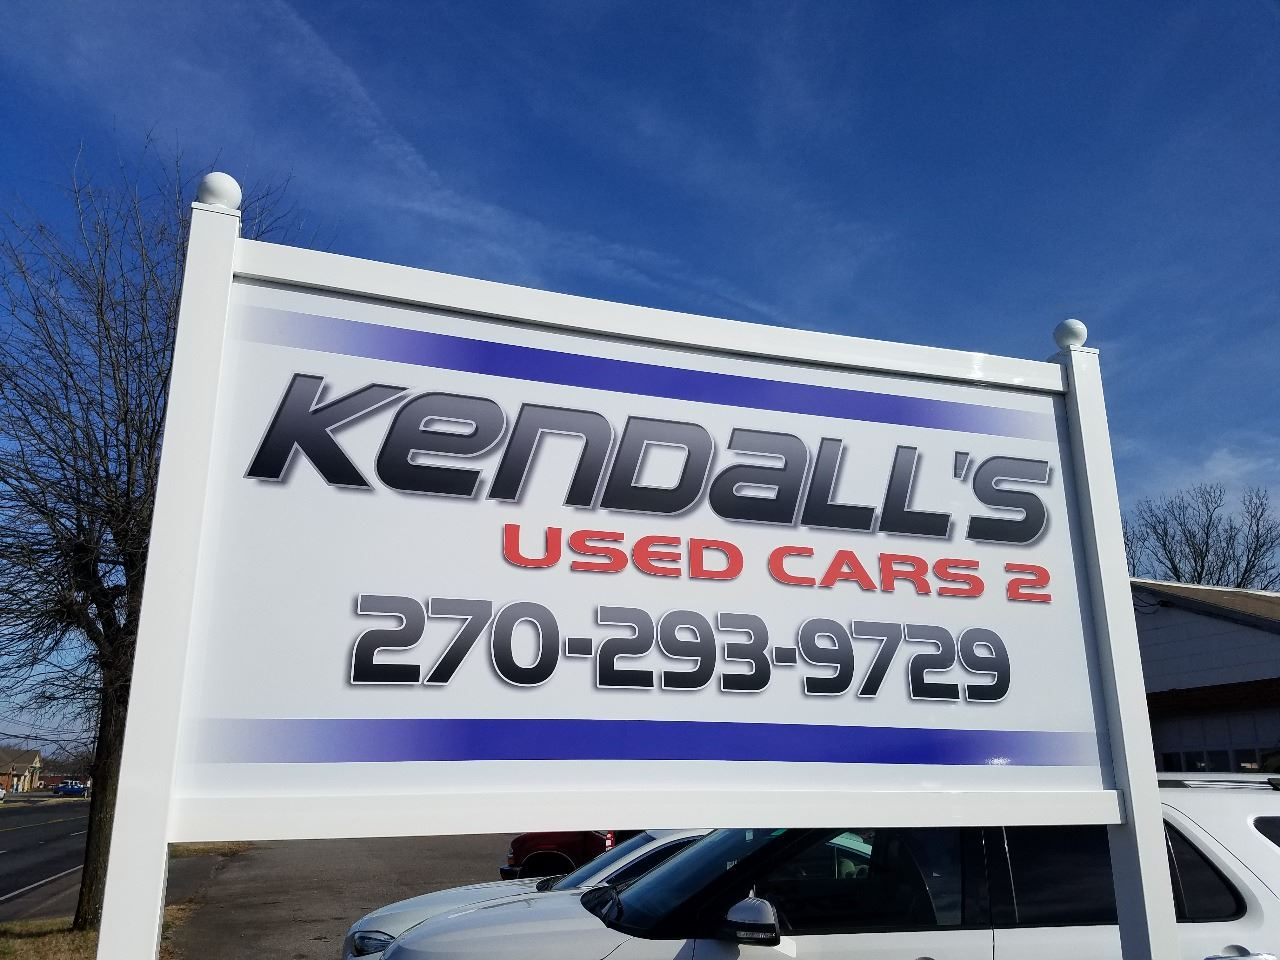 Kendall's Used Cars 2